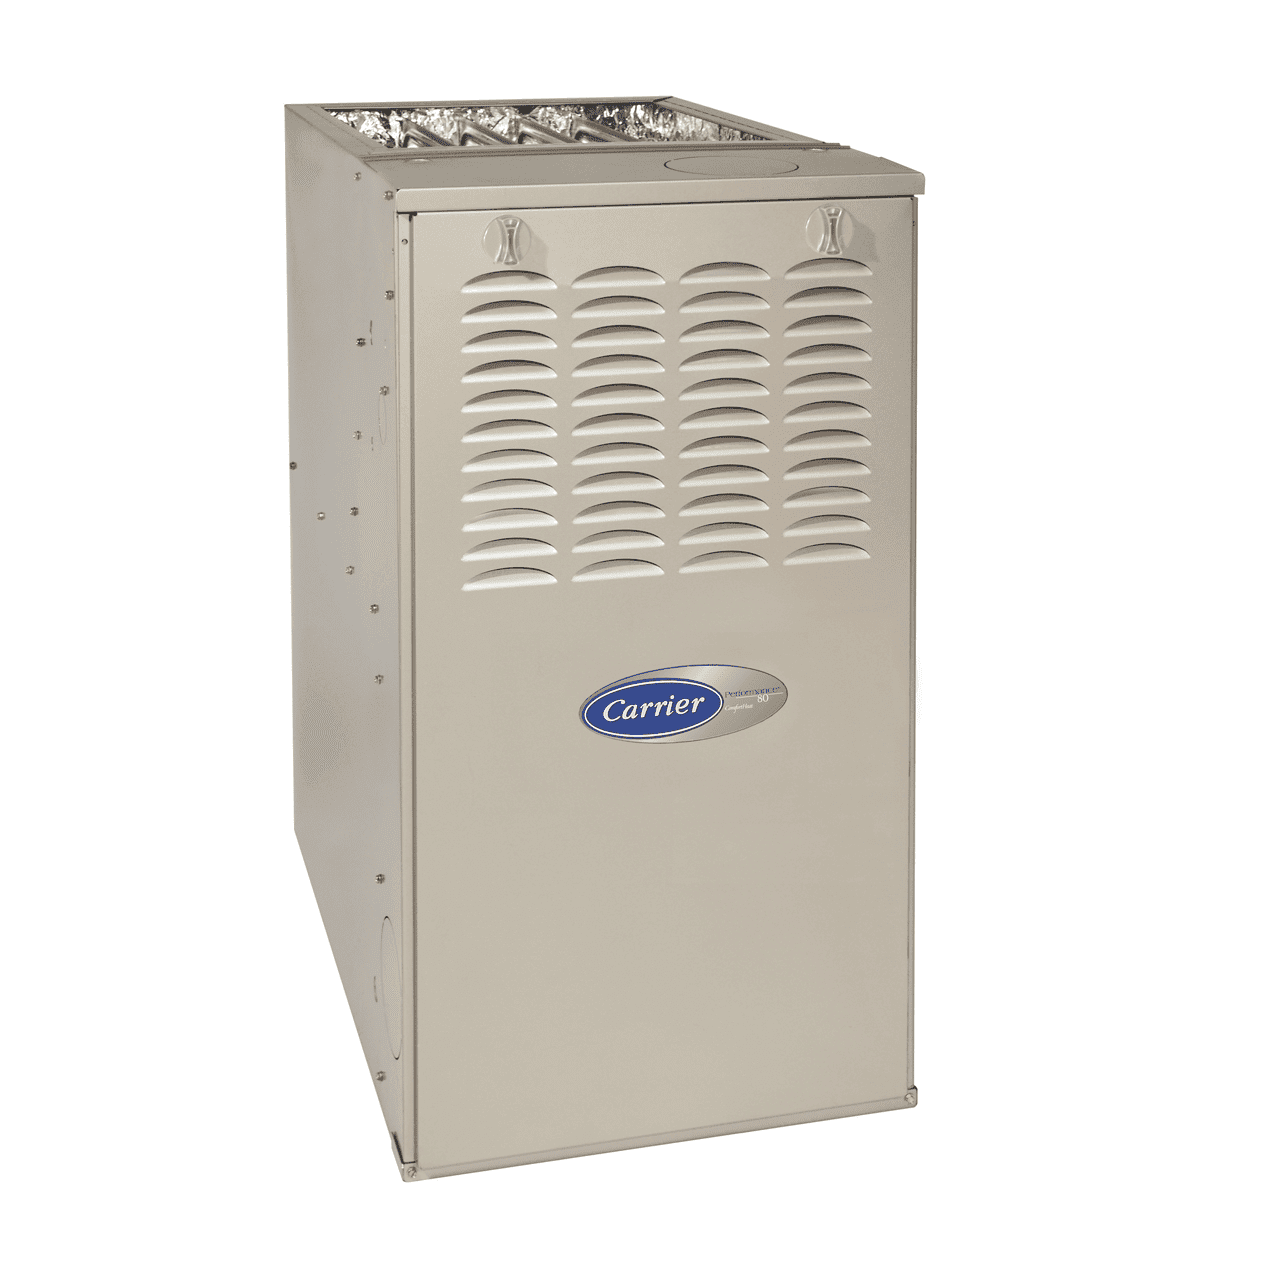 Performance™ Boost 80 Gas Furnace Model: 58PHB